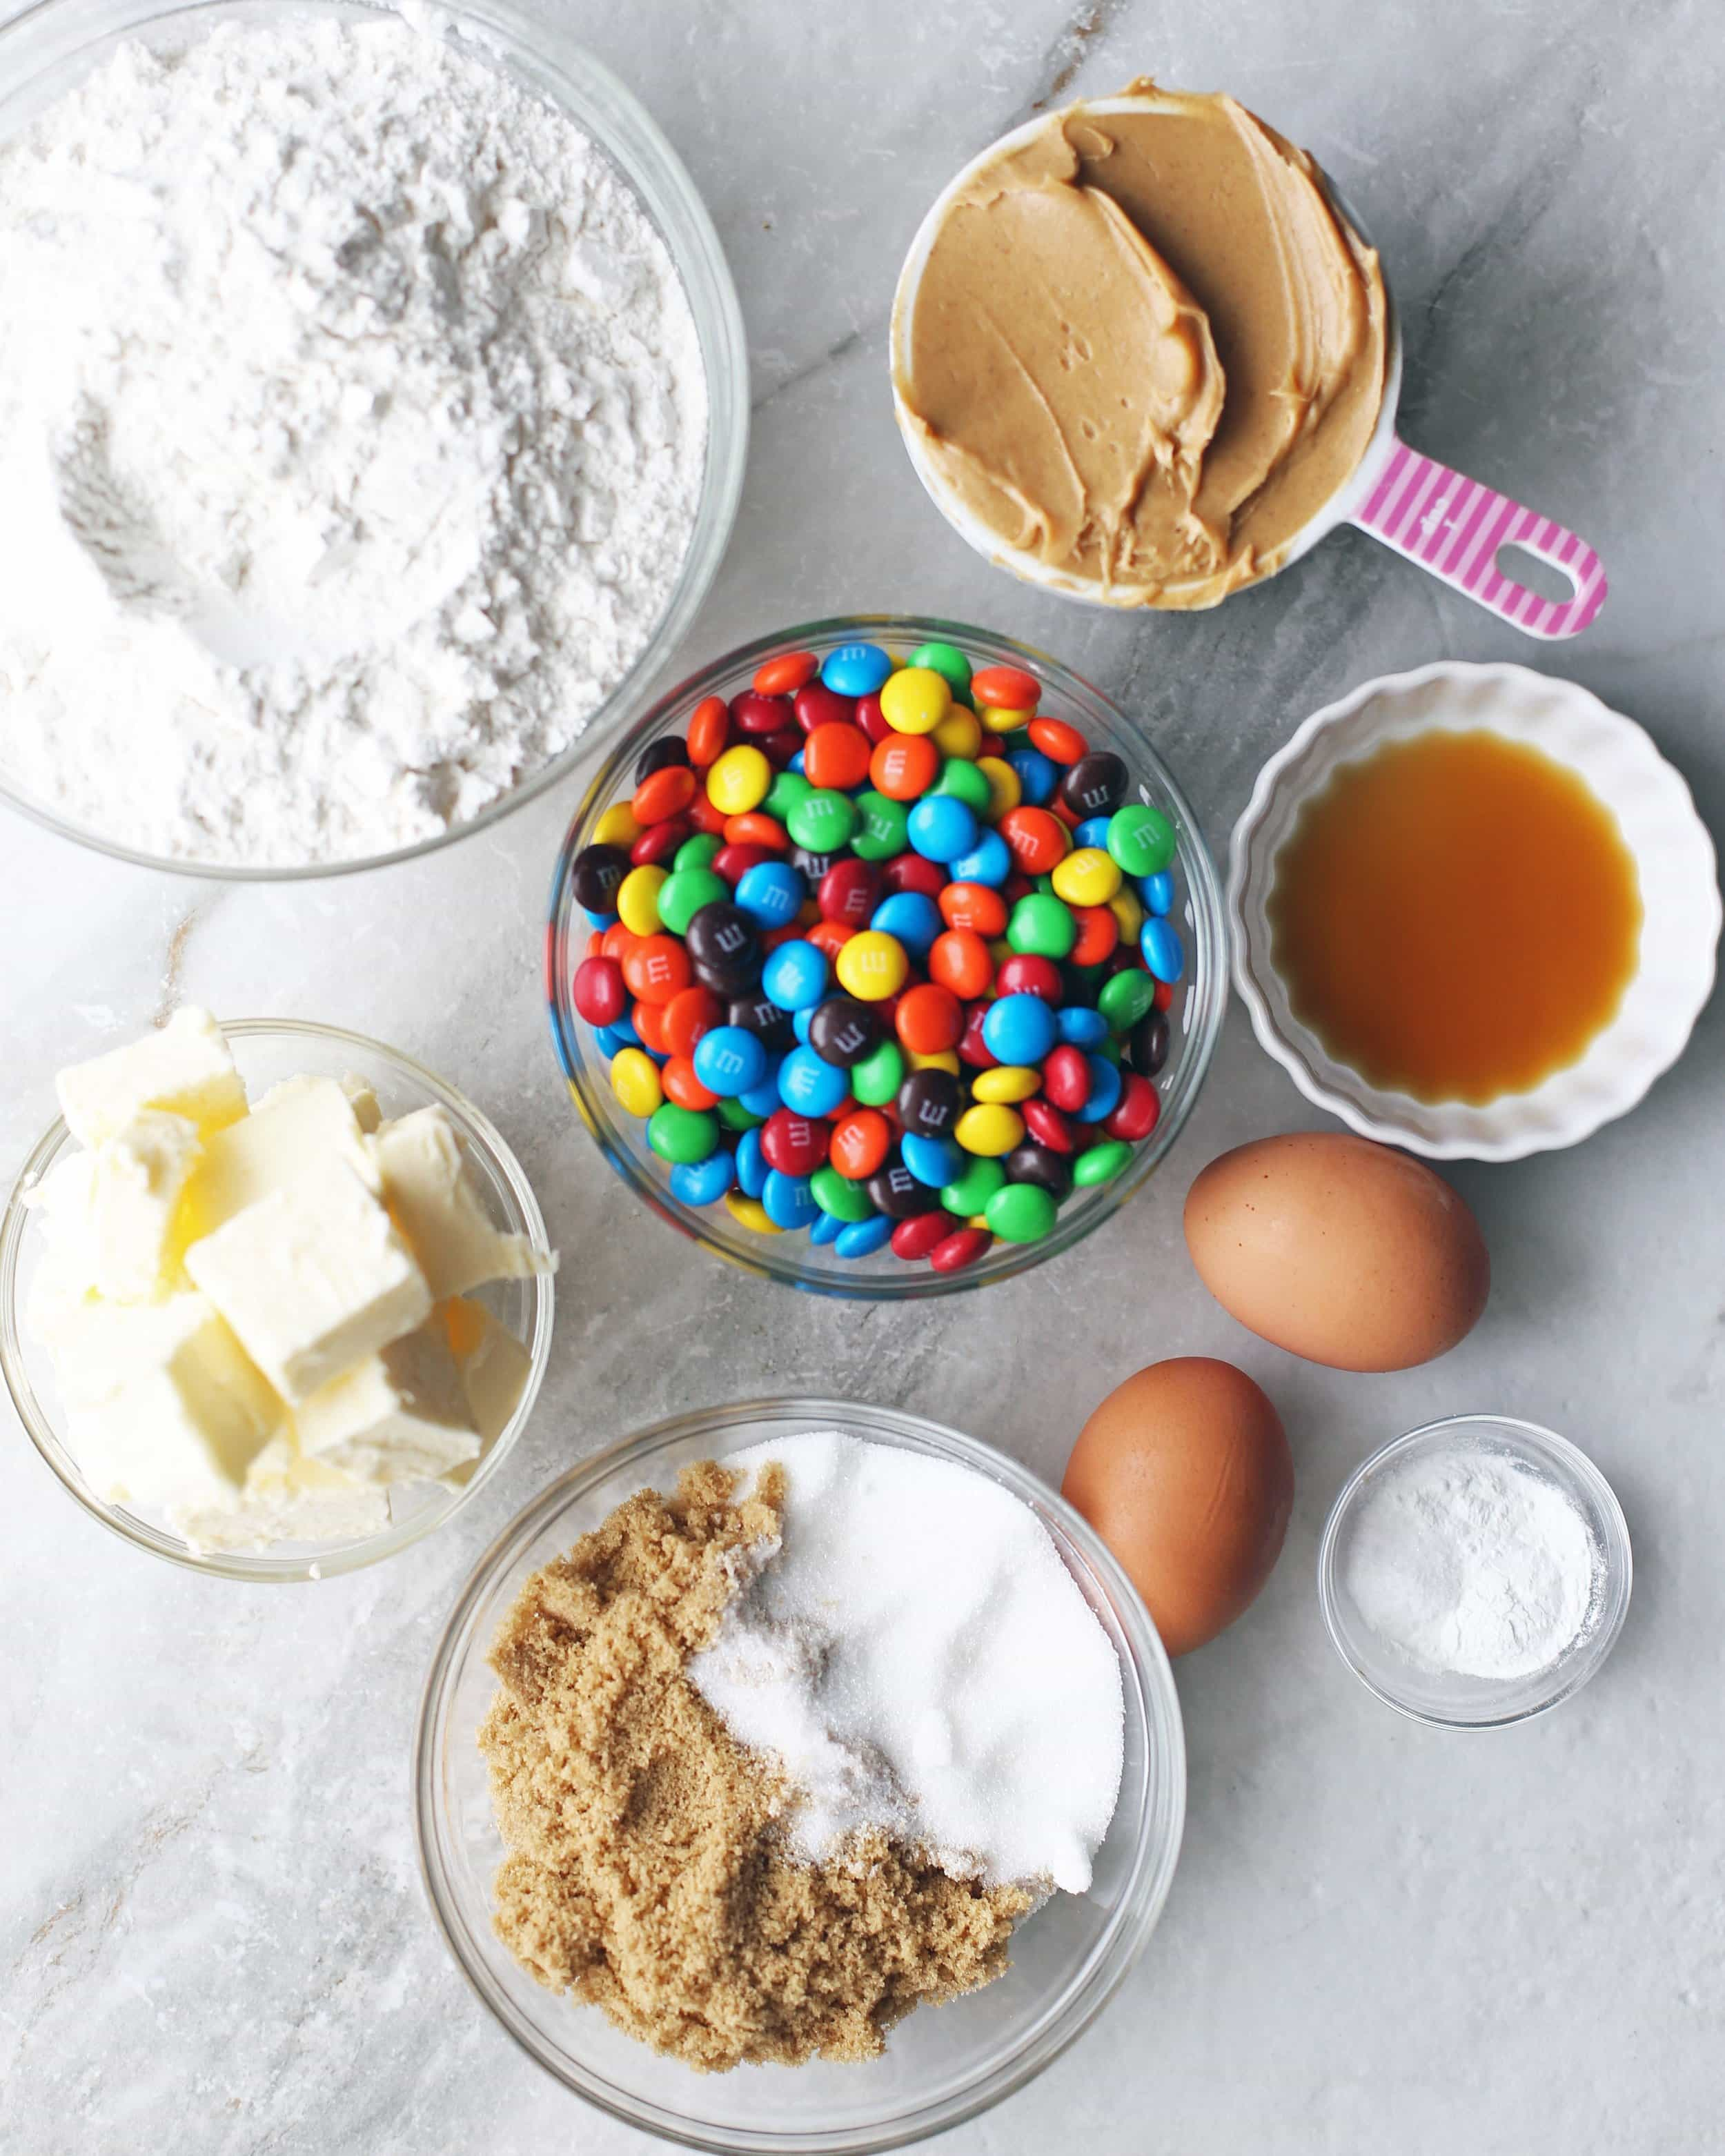 Overhead shot of glass bowls filled with white and brown sugar, butter, flour, peanut butter, vanilla extract, M&M's, eggs, salt, and baking powder.